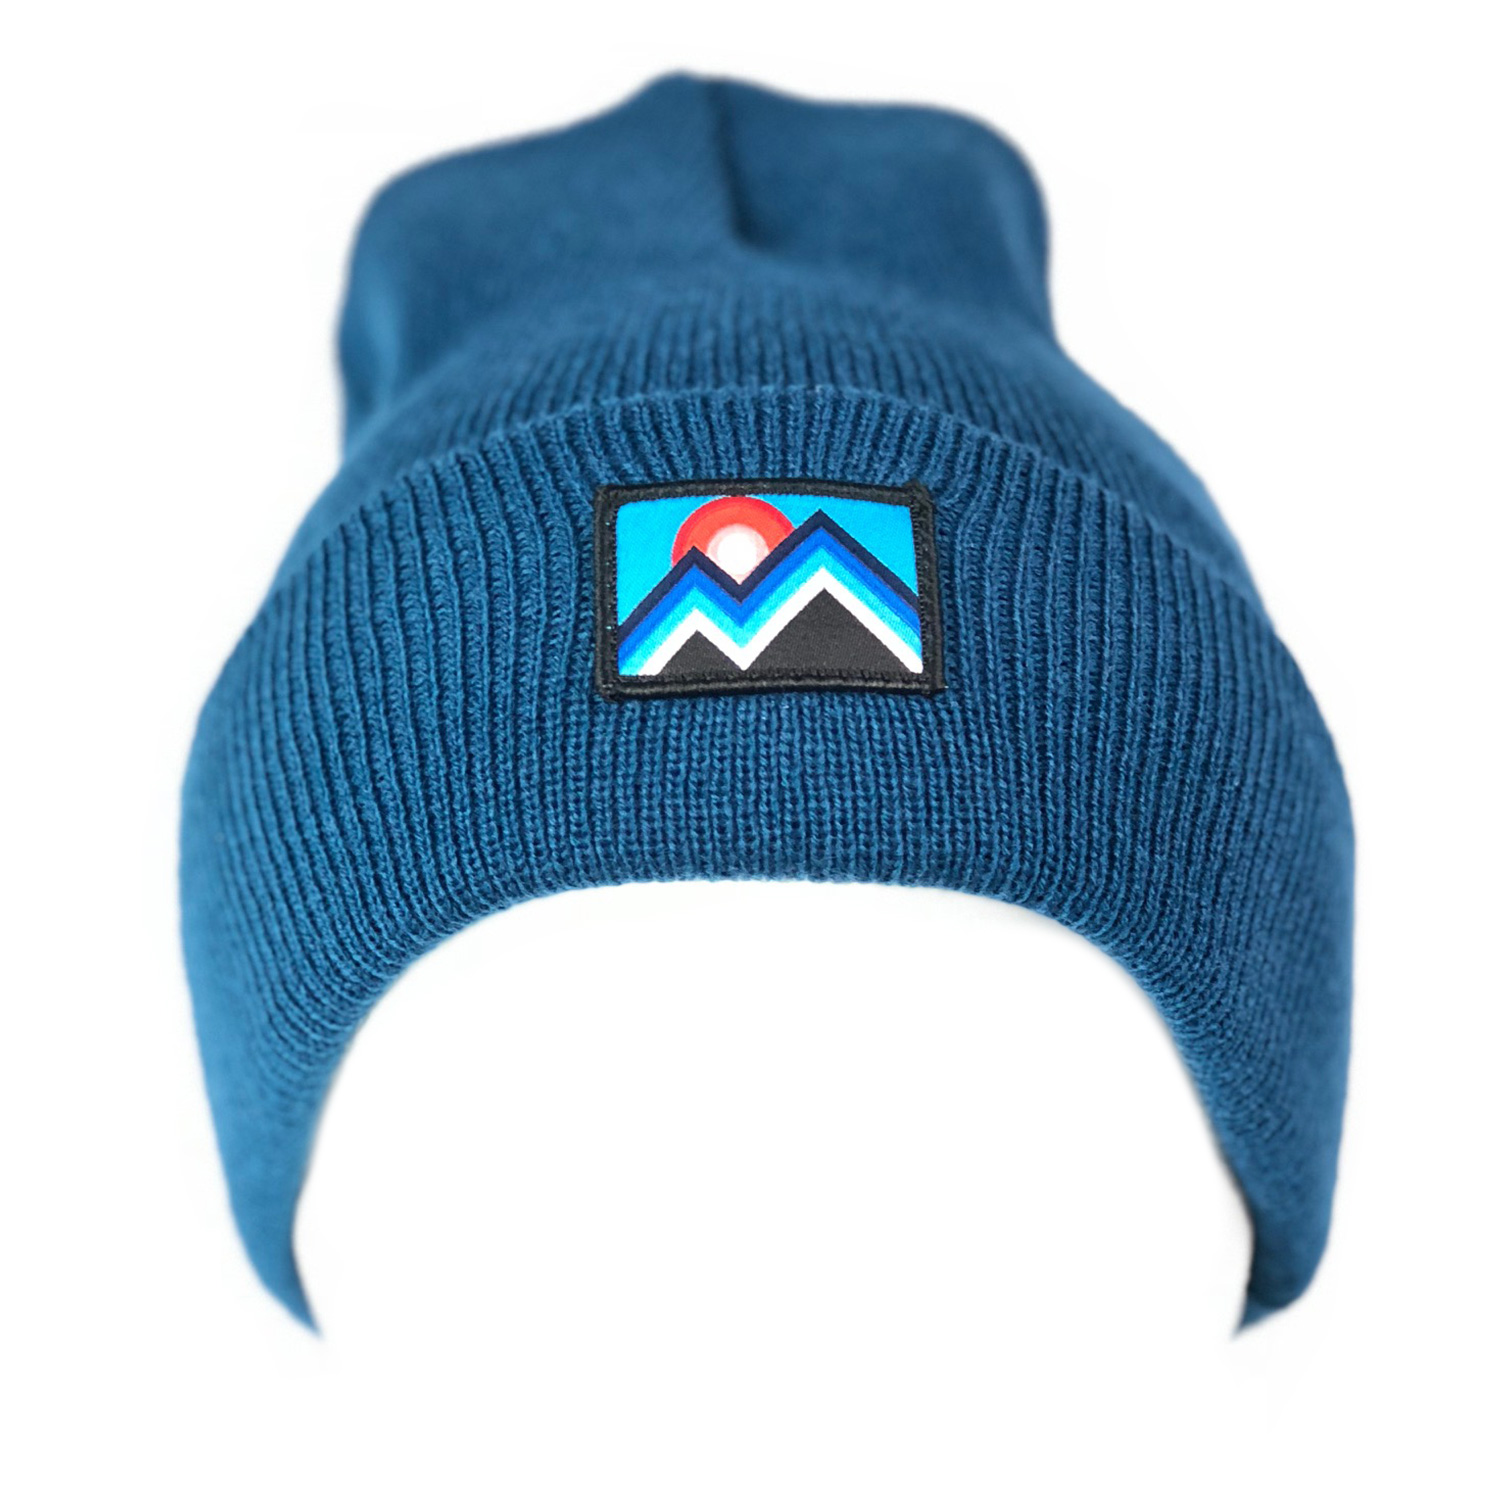 2019_02.05_Beanies_MountainScape_Blue_Front